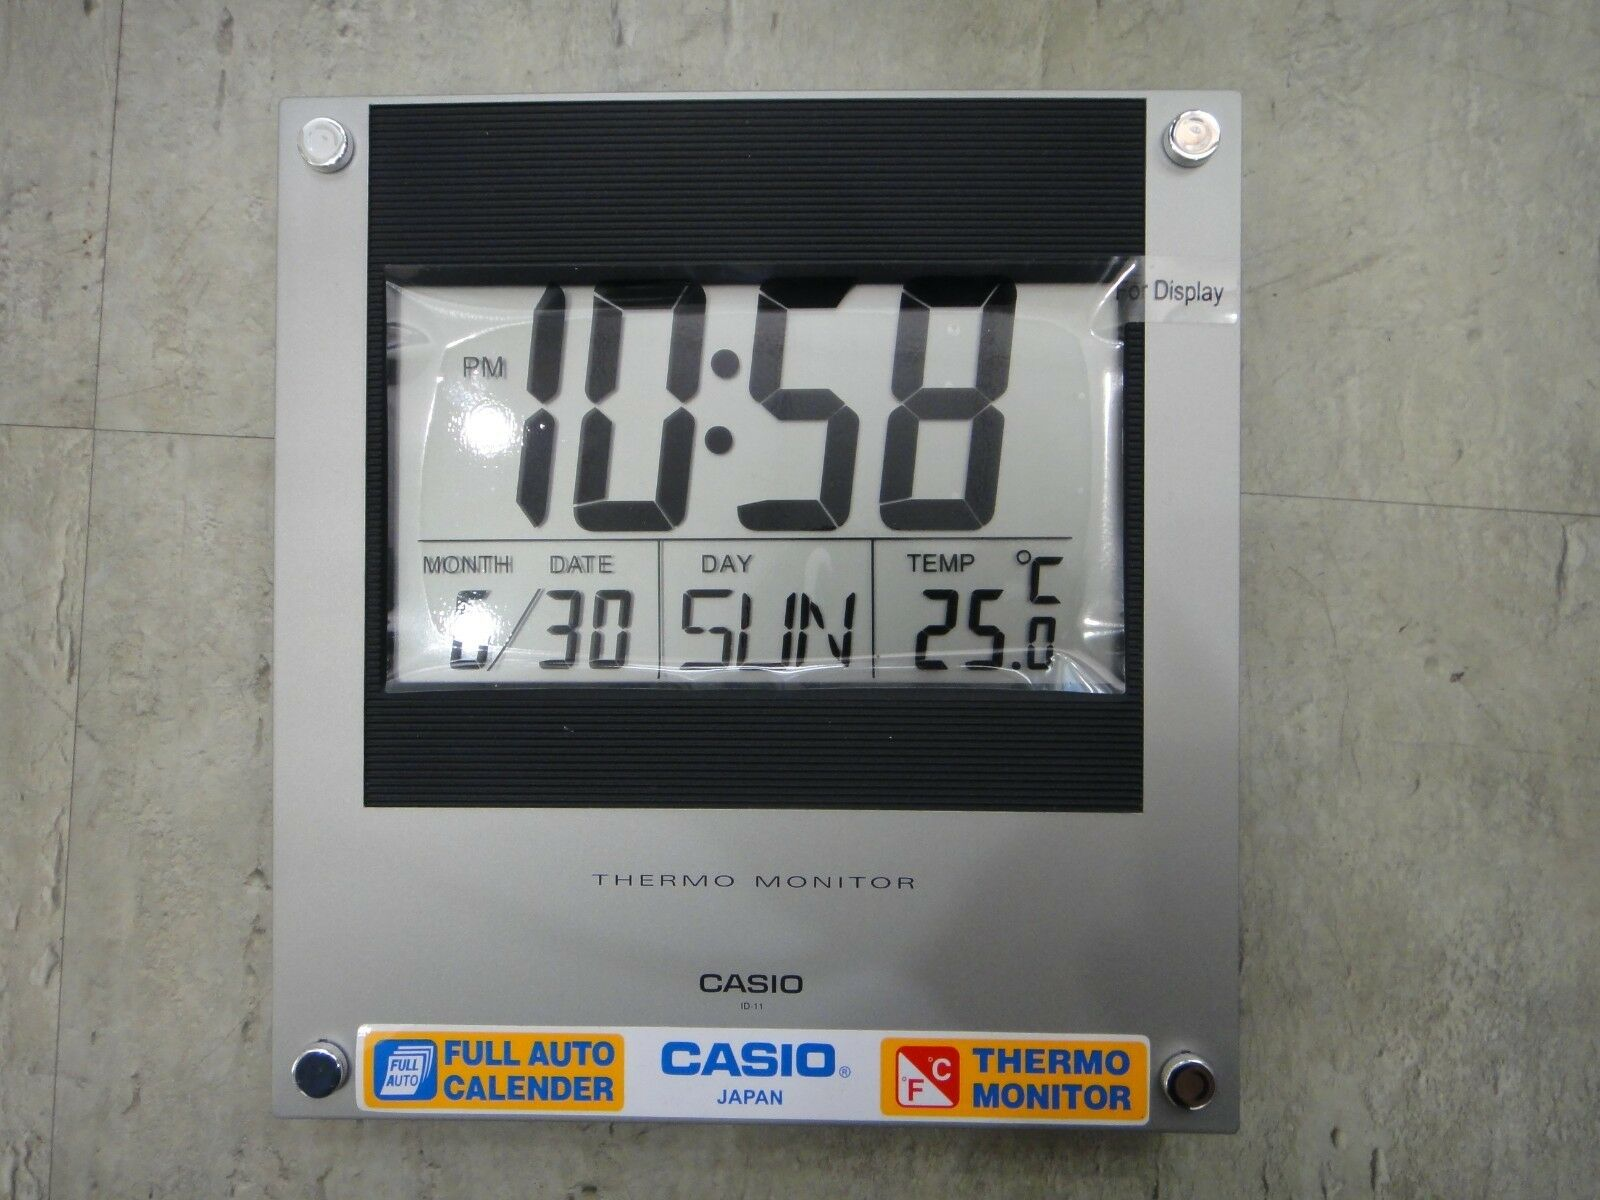 Casio id 11 auto calendar thermo hygrometer large wall clock picture 1 of 4 amipublicfo Gallery